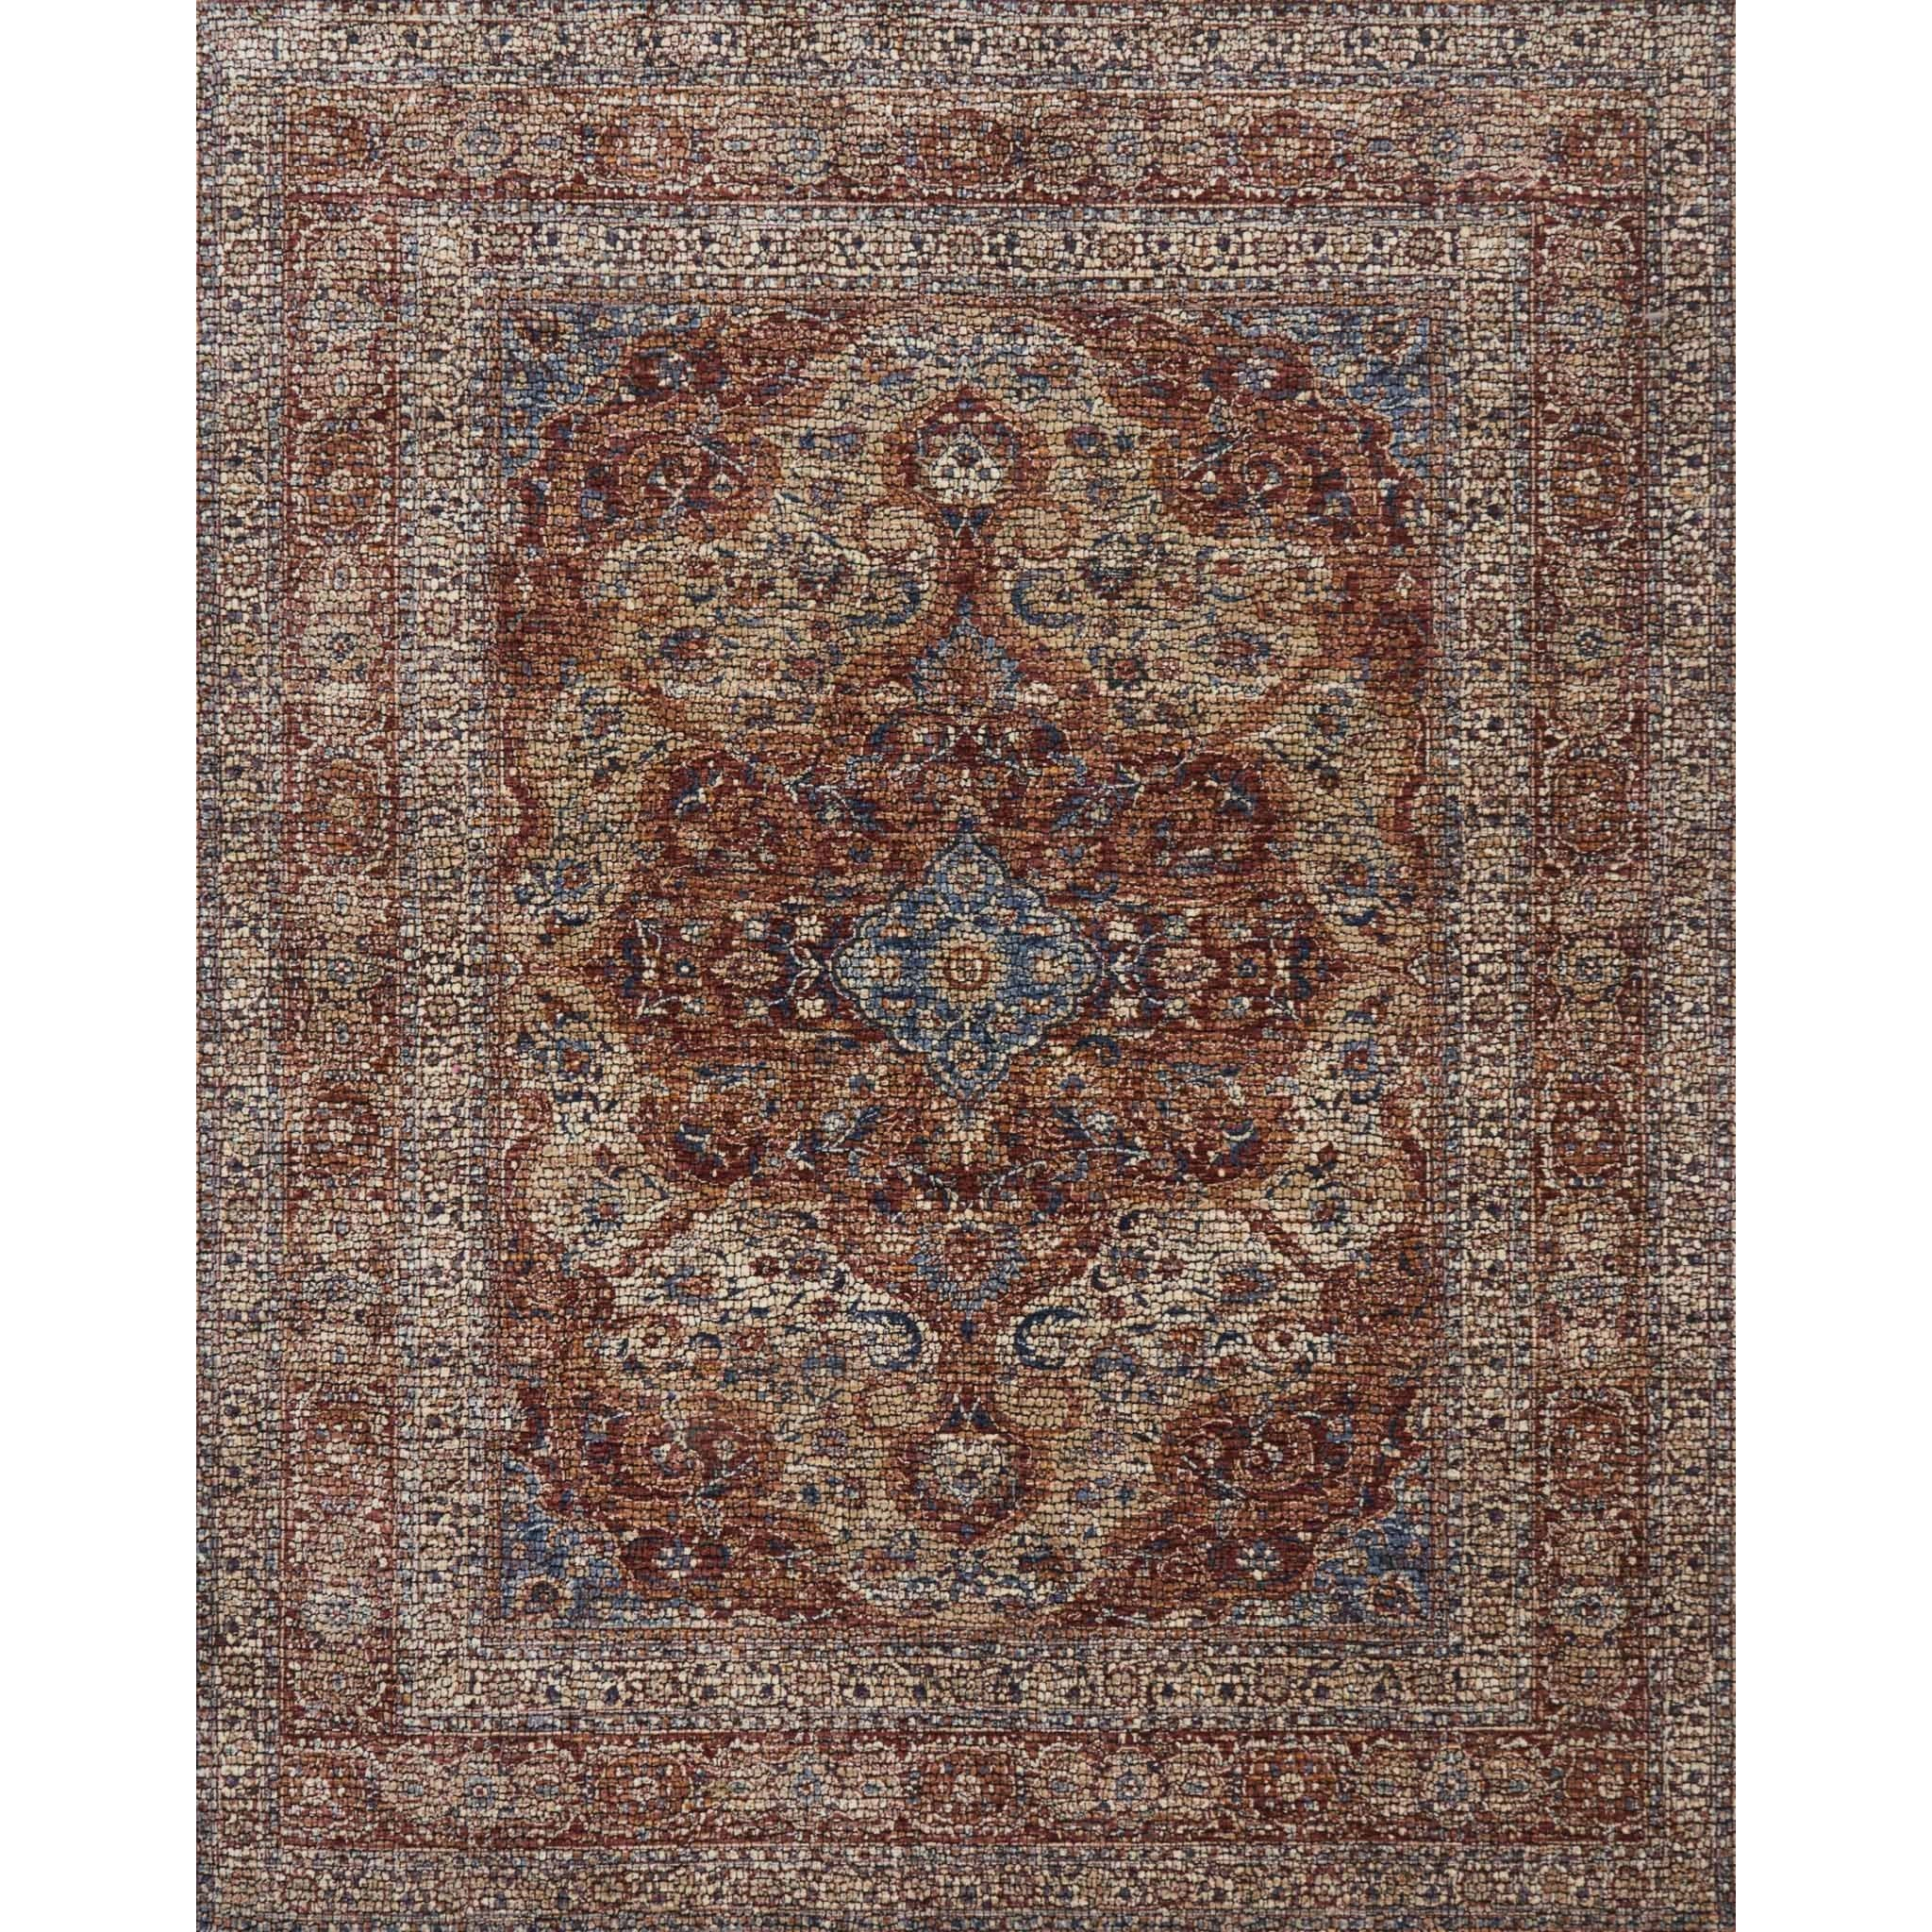 "Porcia 2'-8"" X 8' Runner by Loloi Rugs at Sprintz Furniture"